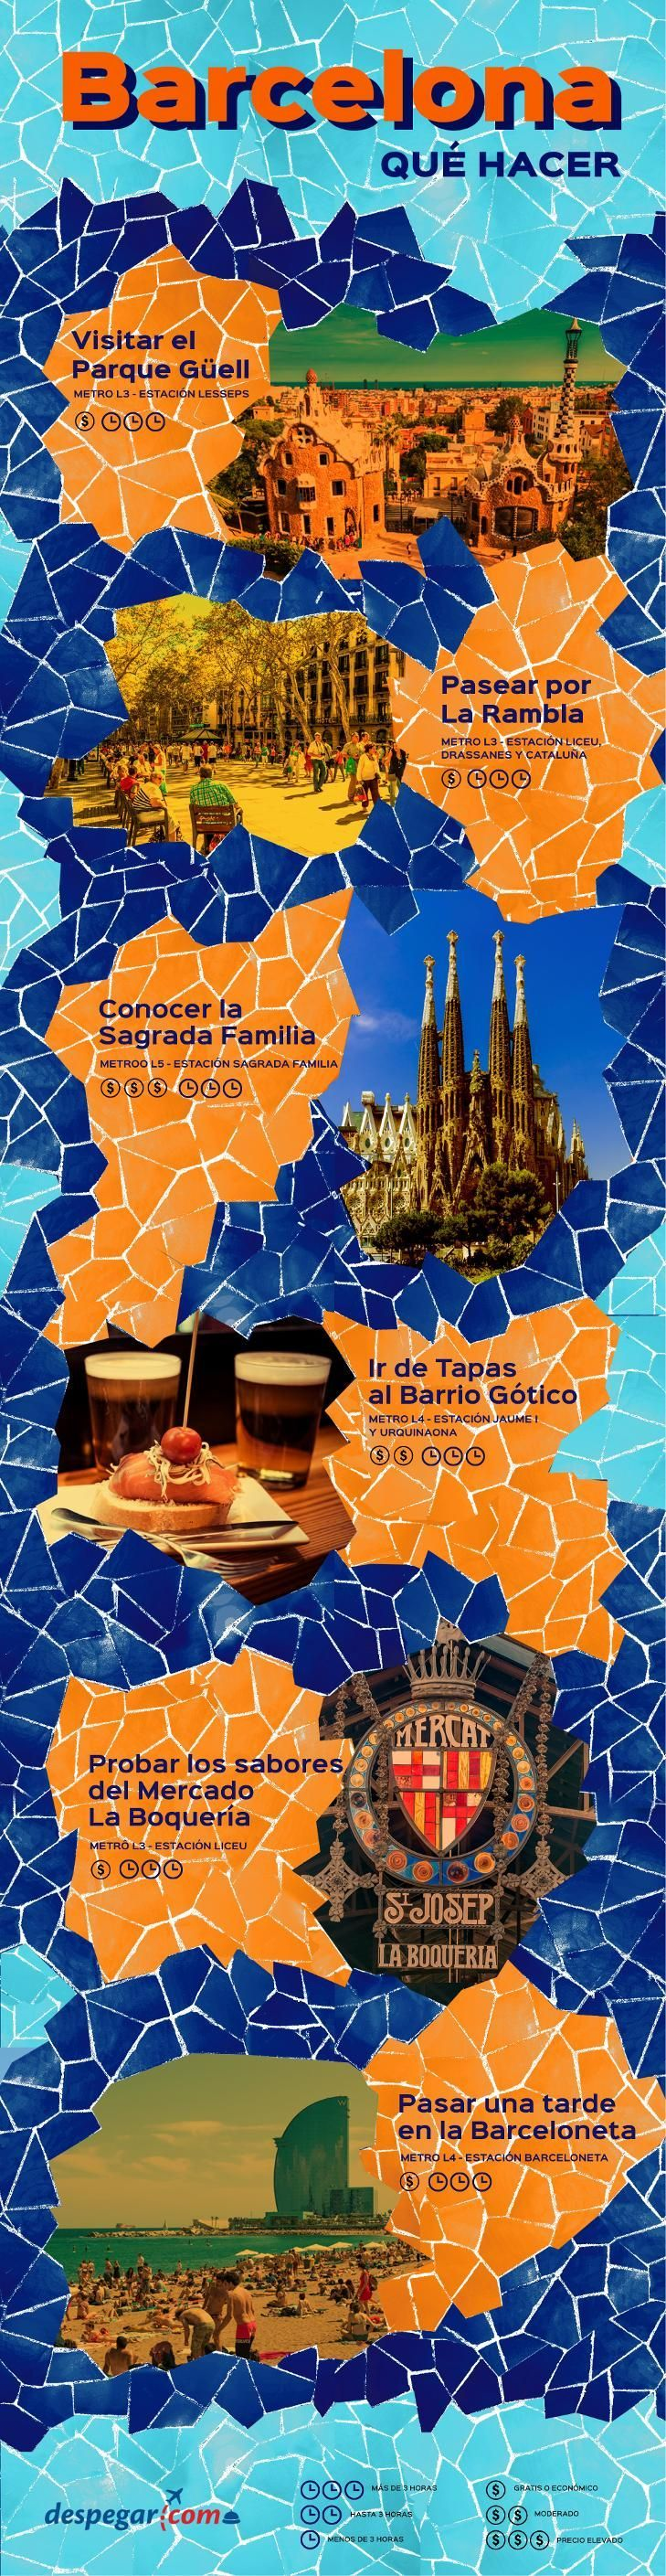 Qué hacer en Barcelona would be good for novice /intermediate students